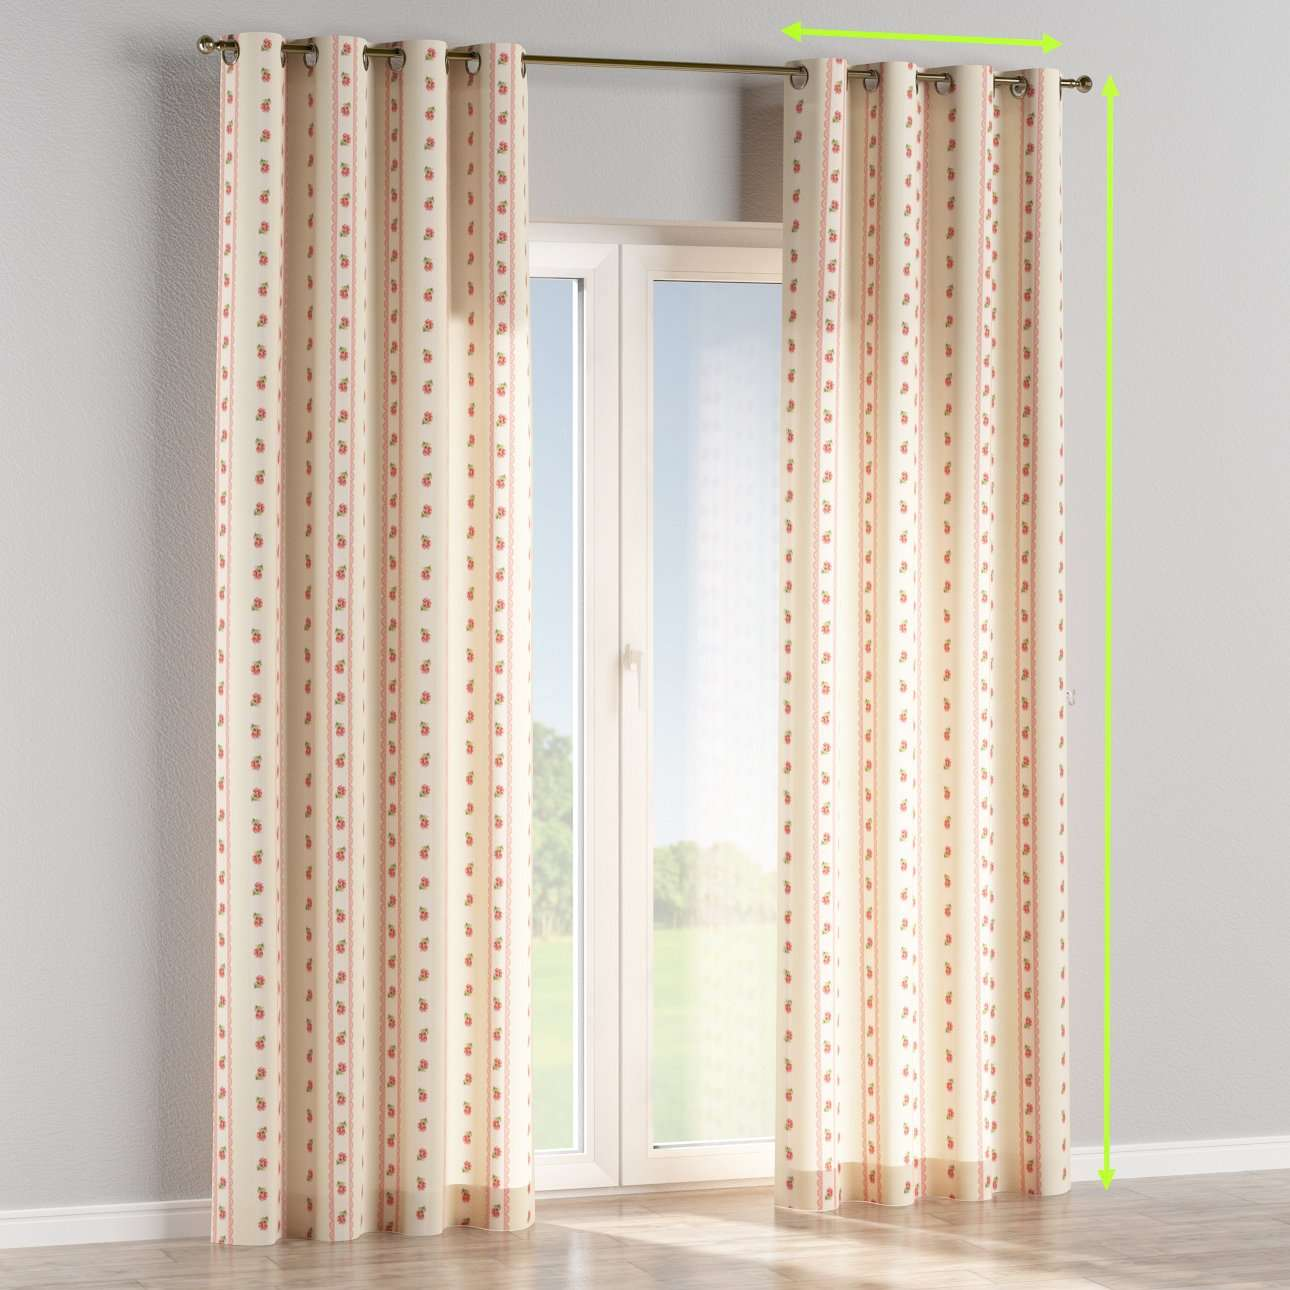 Eyelet lined curtains in collection Ashley, fabric: 137-48